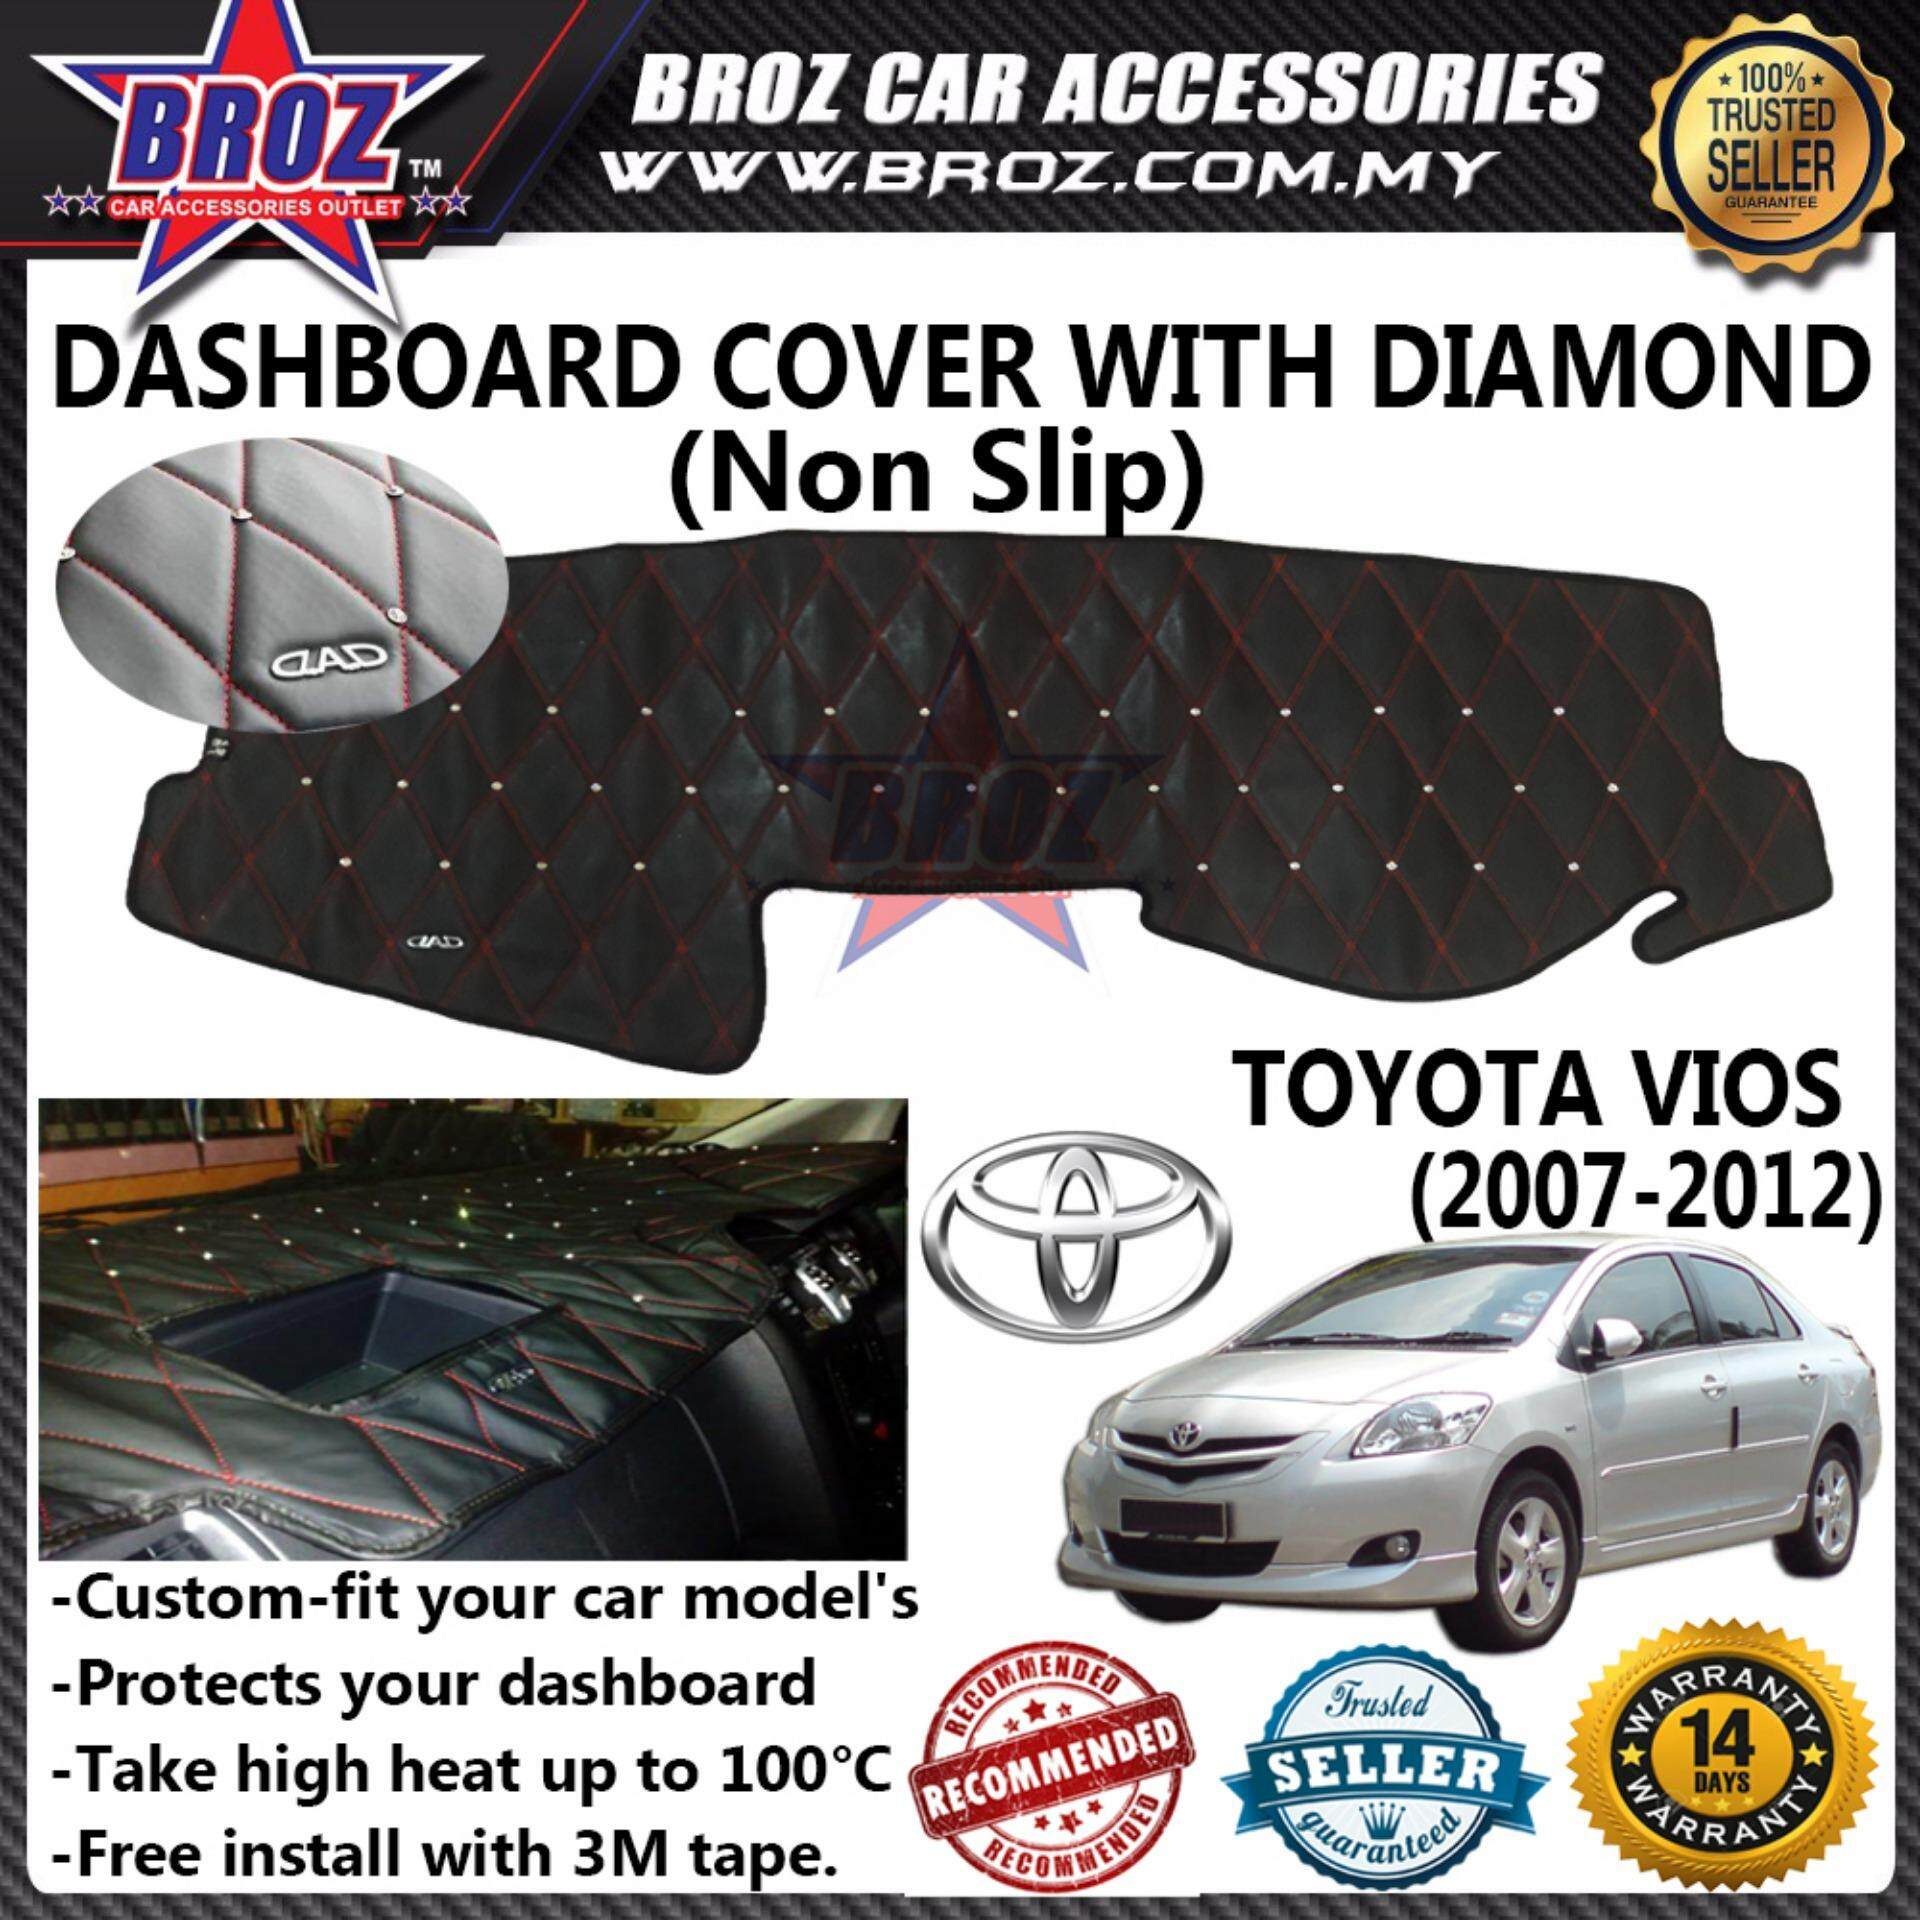 Non Slip Dashboard Cover with diamond for Toyota Vios 2007-2012